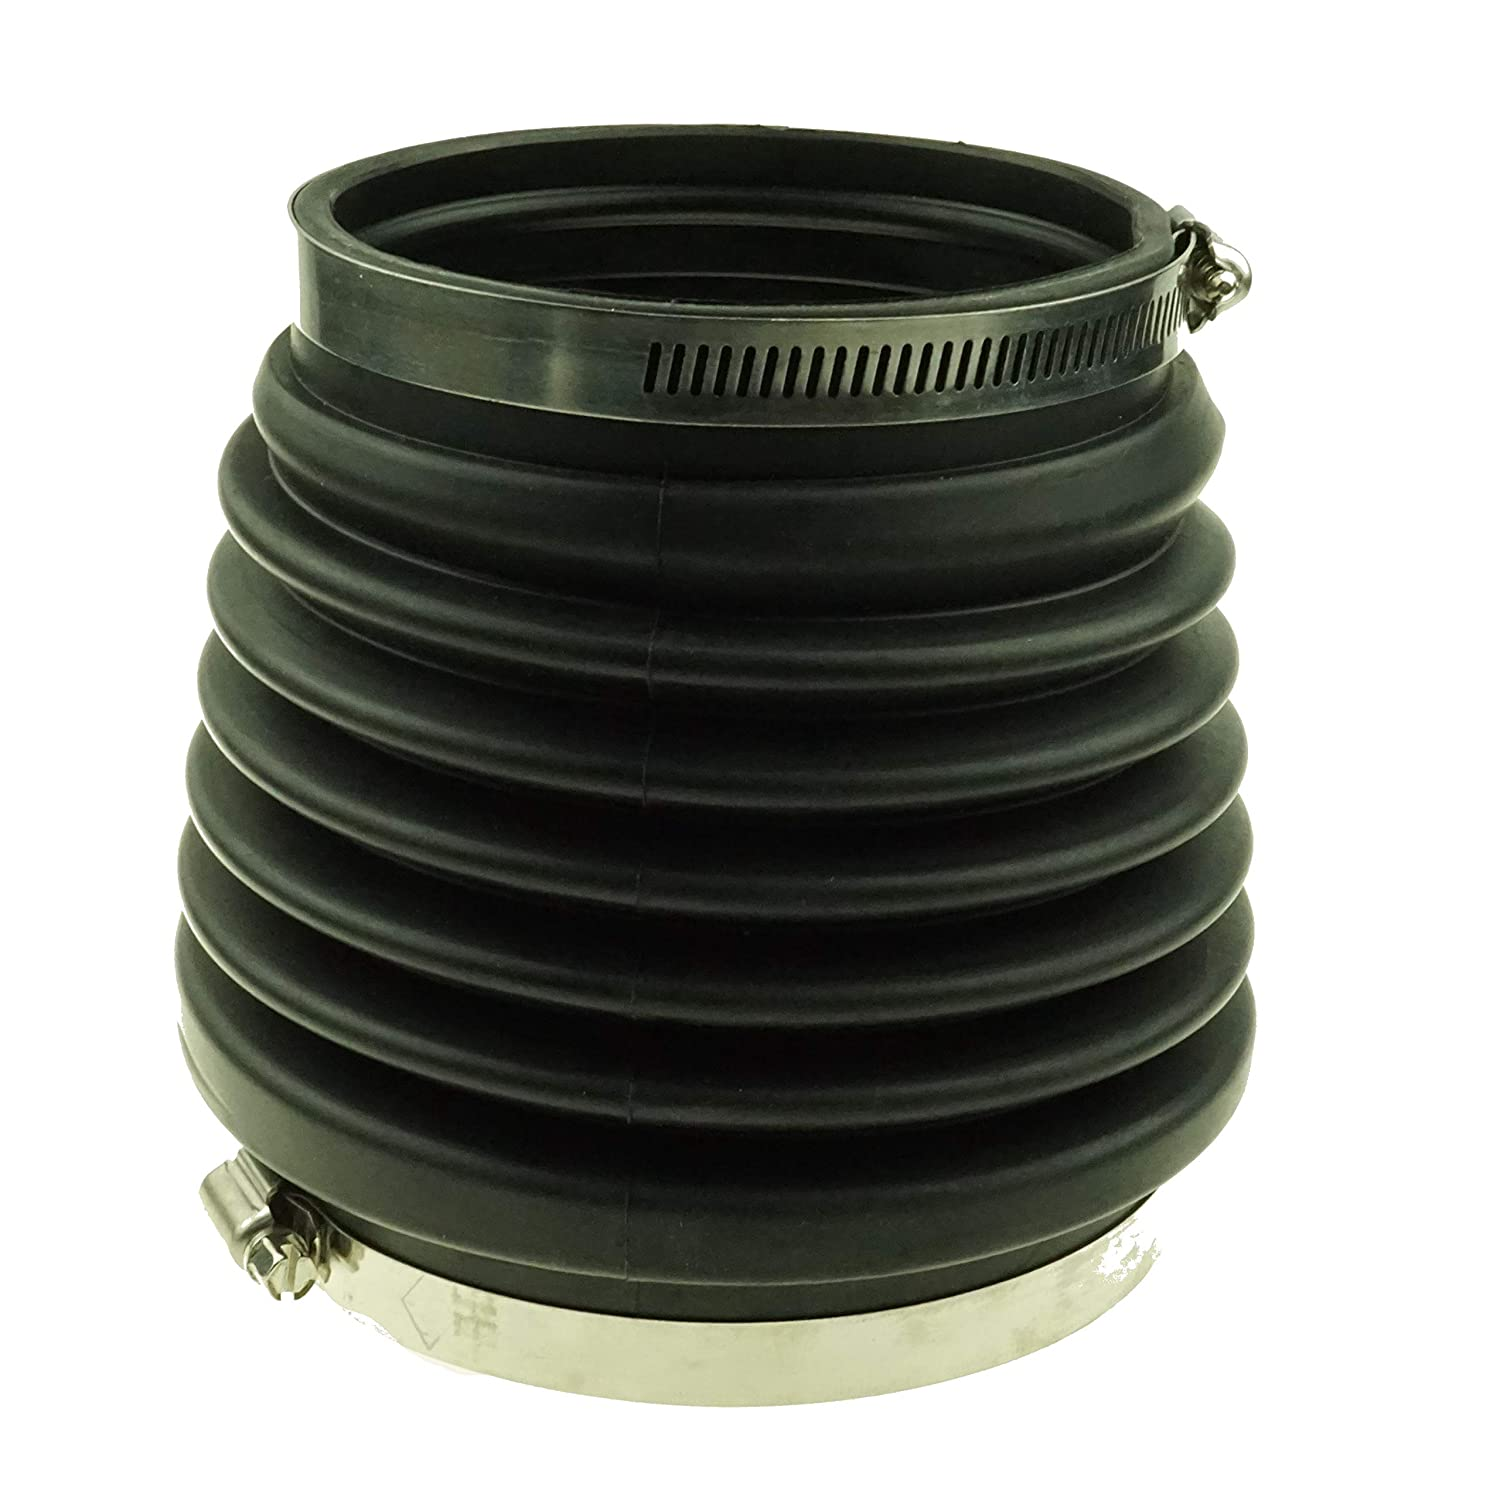 GHmarine U-Joint Drive Bellows Kit for Volvo Penta Stern Drive Replaces 876294-0 875826-0